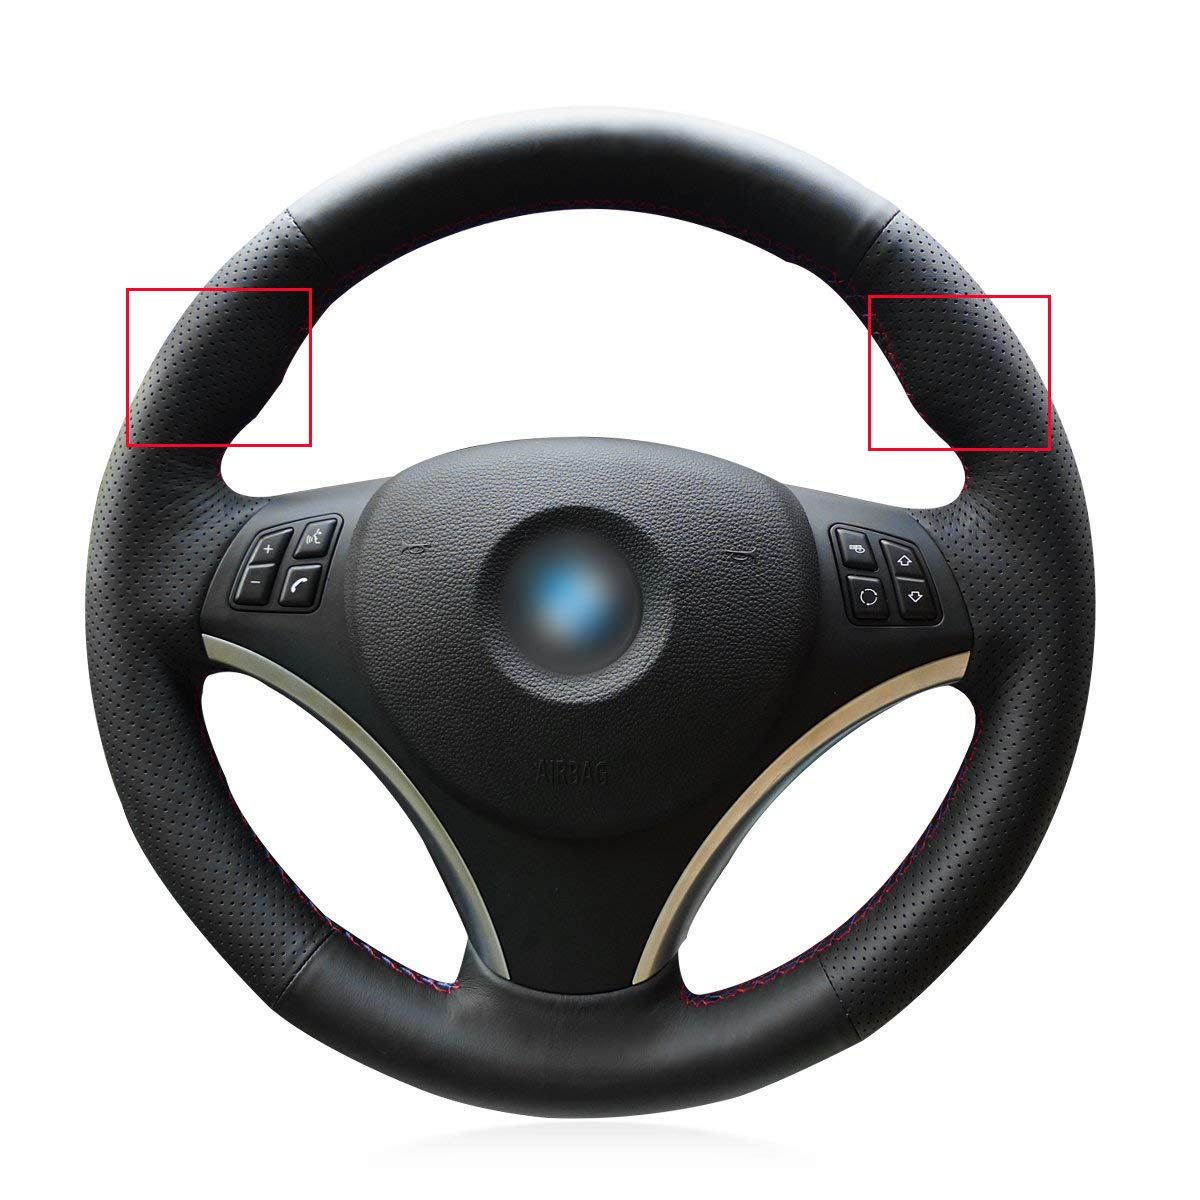 Black Genuine Leather Steering Wheel Cover For Bmw 128 I 135 I Bmw 325 I 328 I 328 Xi 328 Car Steering Wheel Cover Steering Wheel Custom Steering Wheel Cover